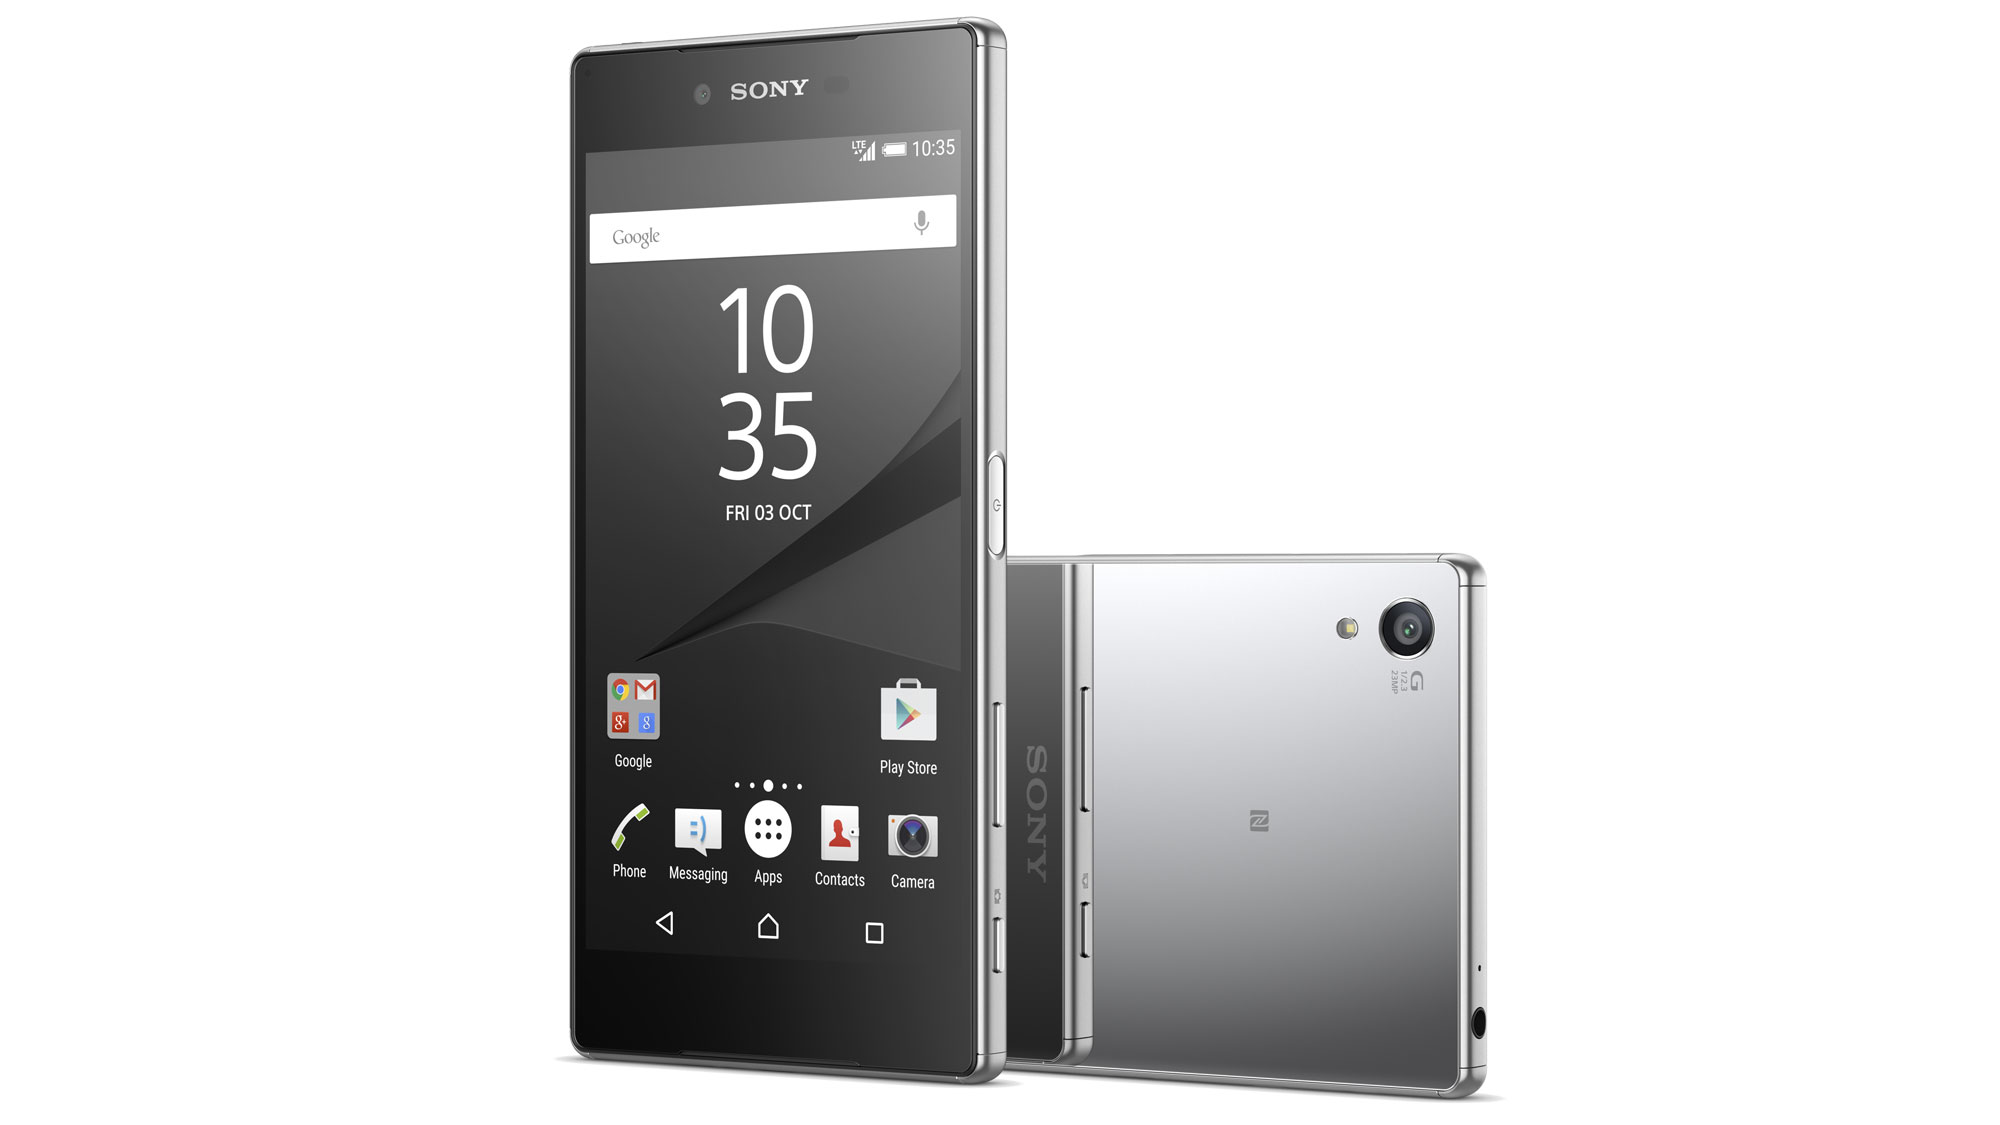 Watch Sony Creates Xperia Z5 Premium With Worlds First 4K Display video